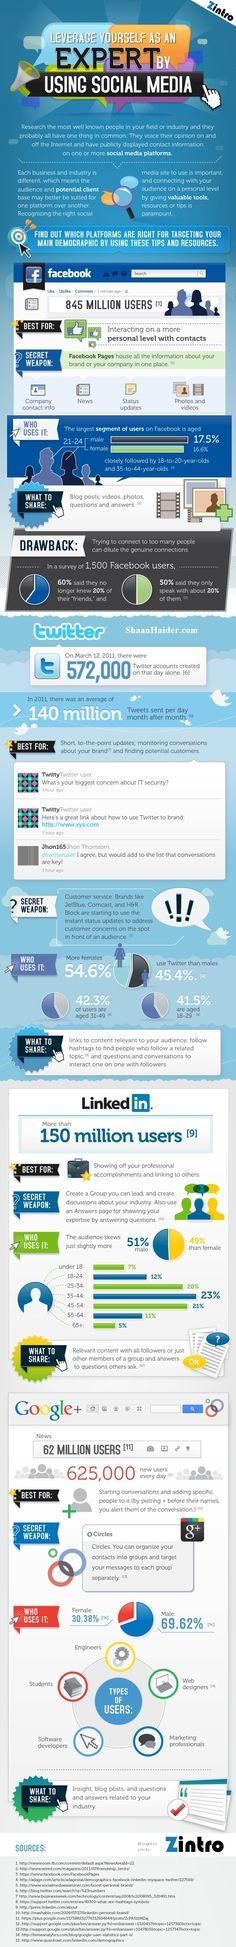 How To Use Social Media To Showcase Your Professional Expertise (Infographic)